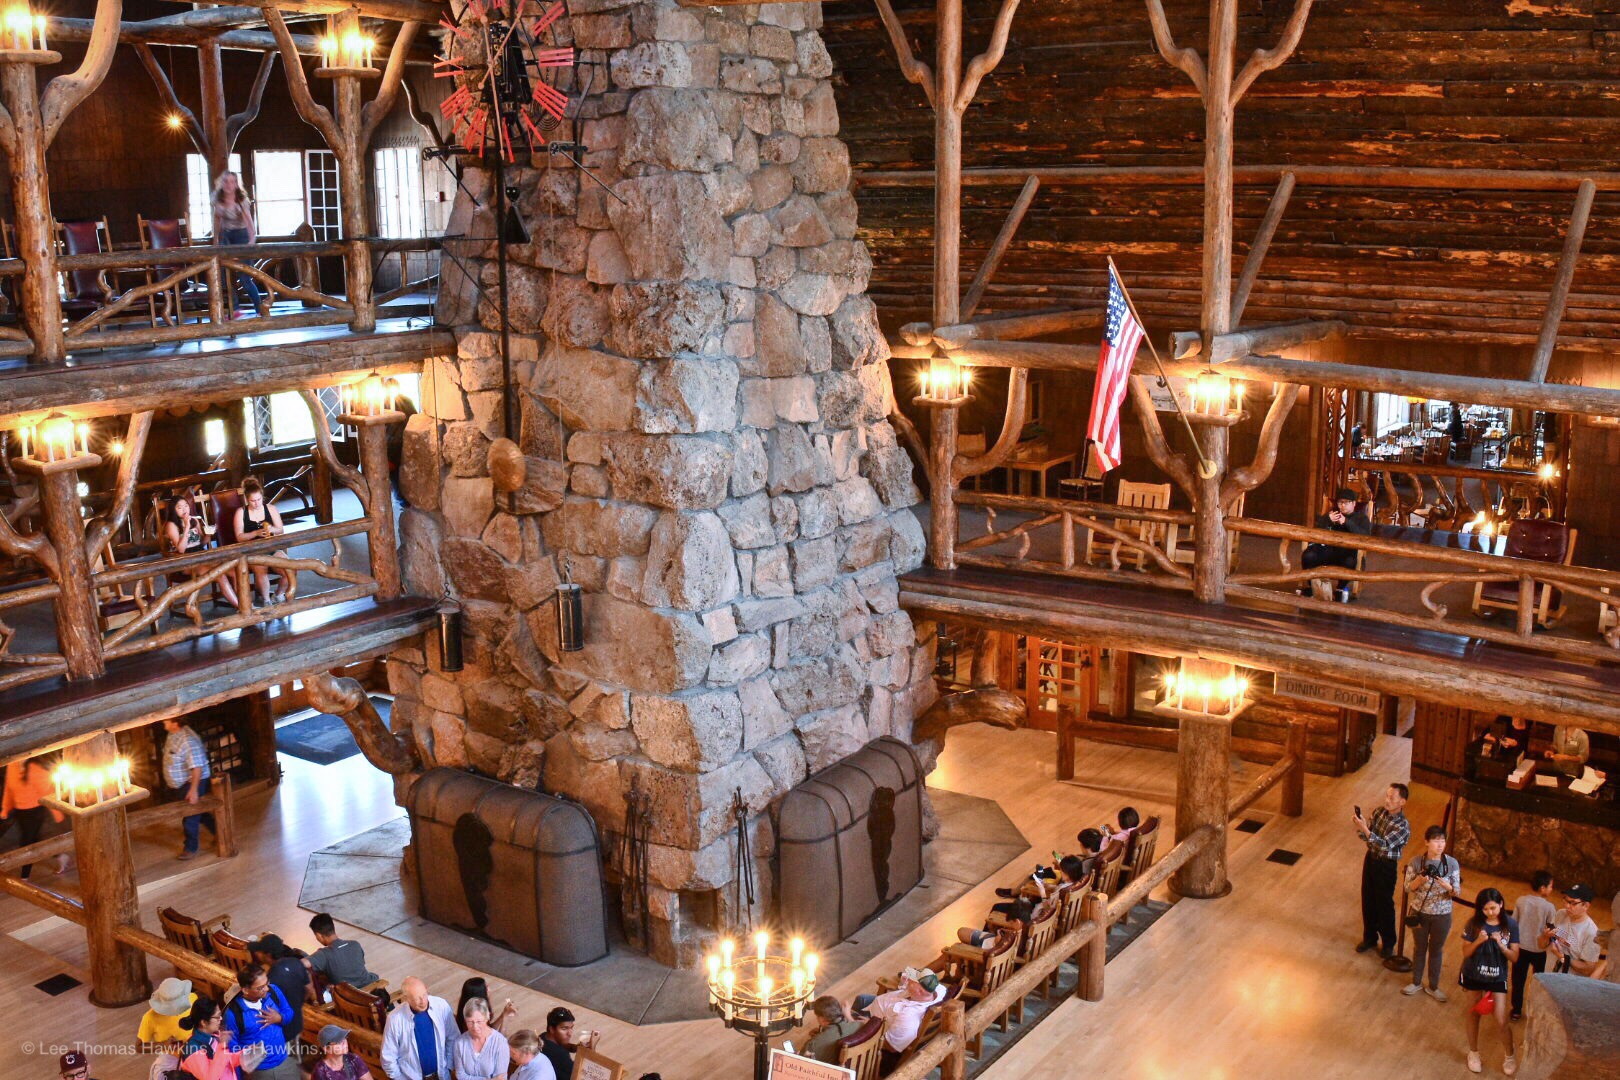 The rustic wood atrium of a hotel lobby rises multiple levels around a stone chimney surrounded by people.